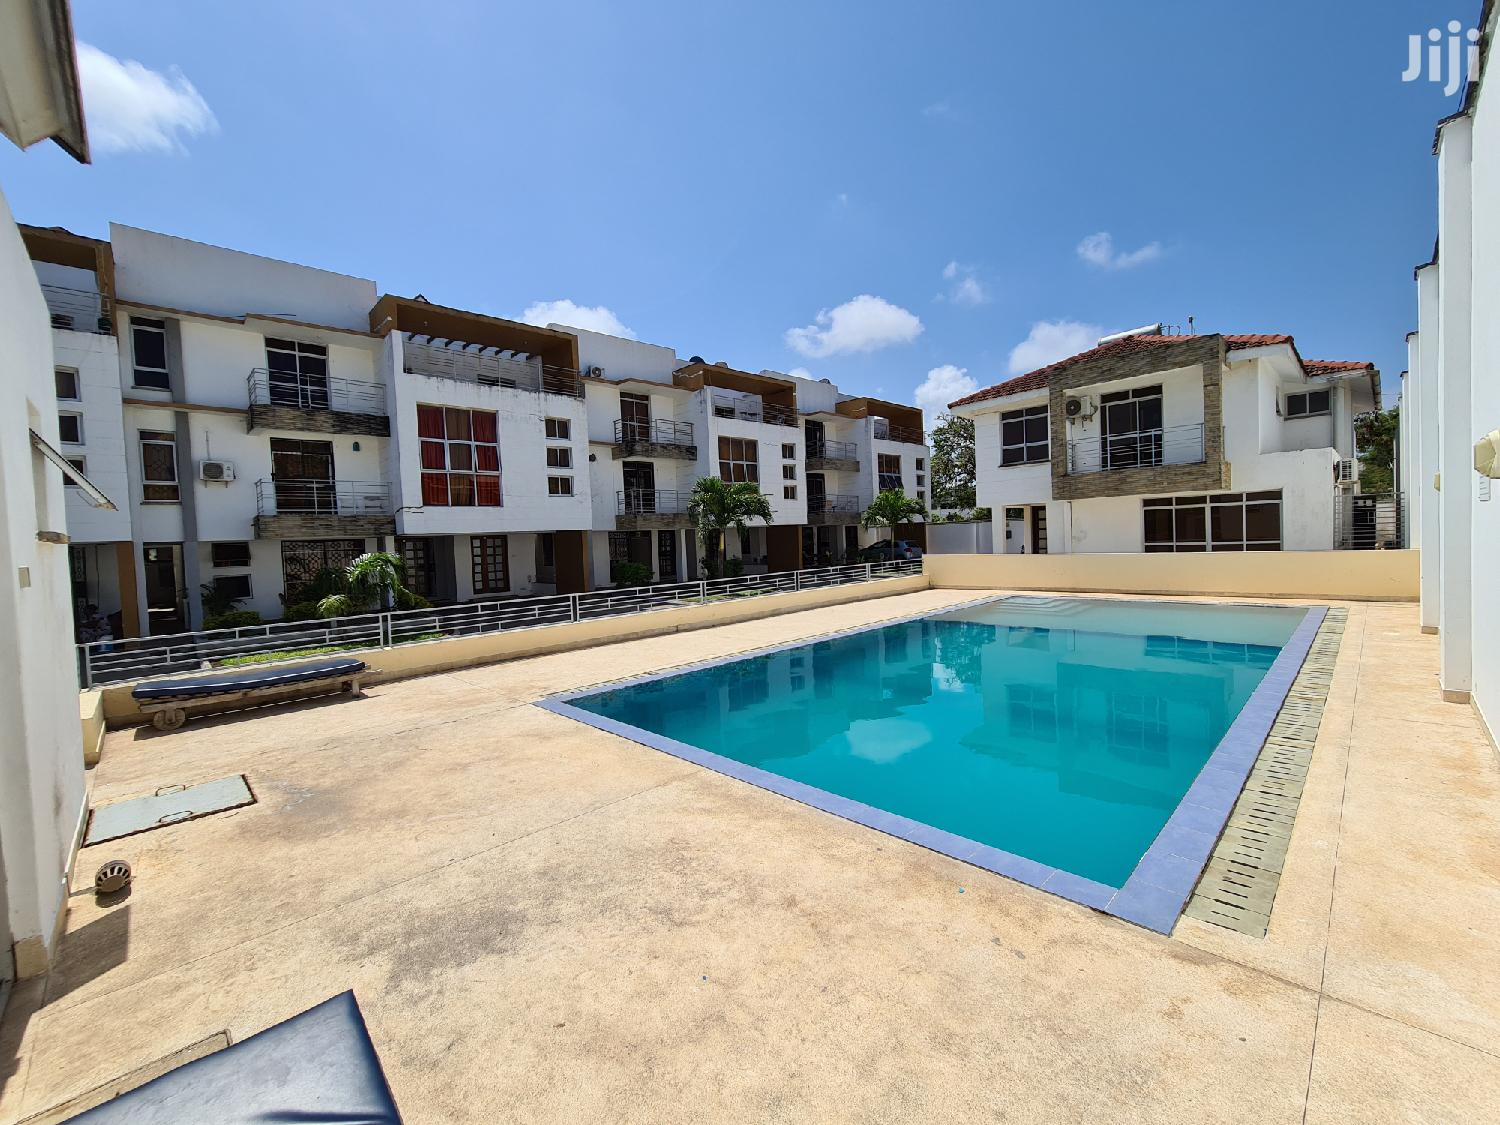 Ultra Modern 3 Bedroom Duplex For Rent In Nyali.